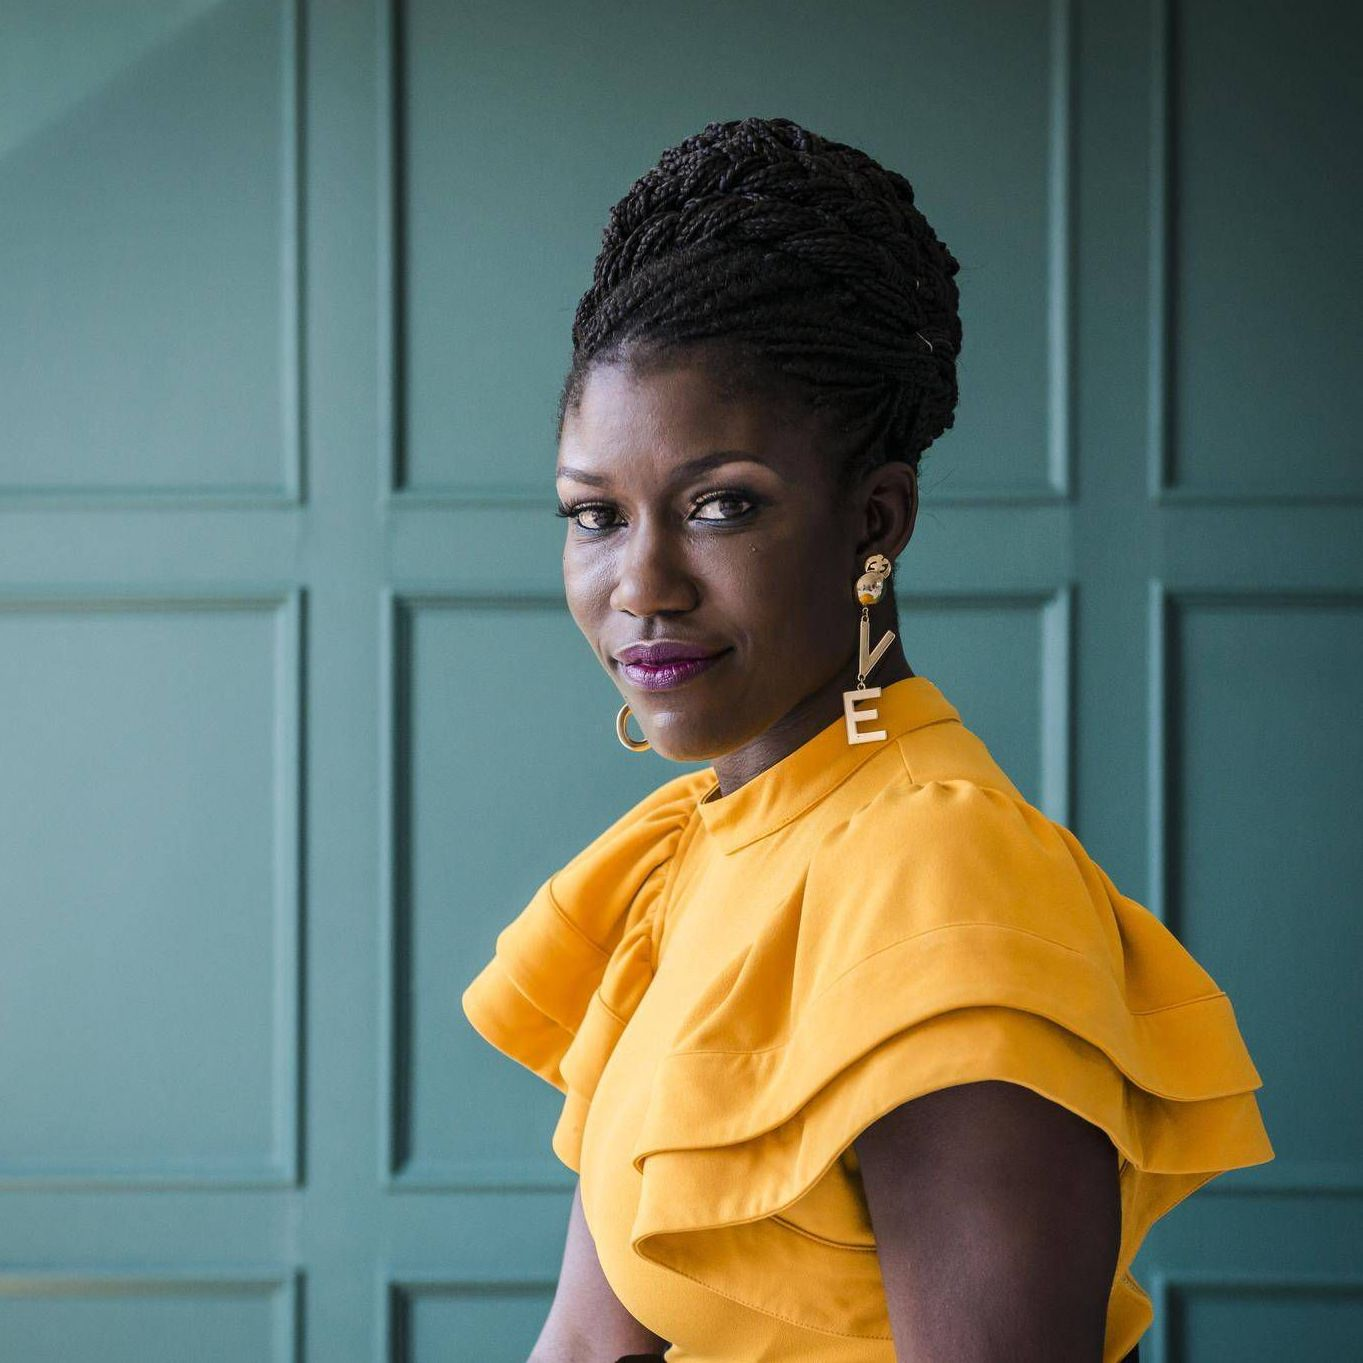 """A photo of Bozoma St. John wearing a yellow shirt and earrings that spell out """"LOVE"""" sitting in front of a teal wall."""